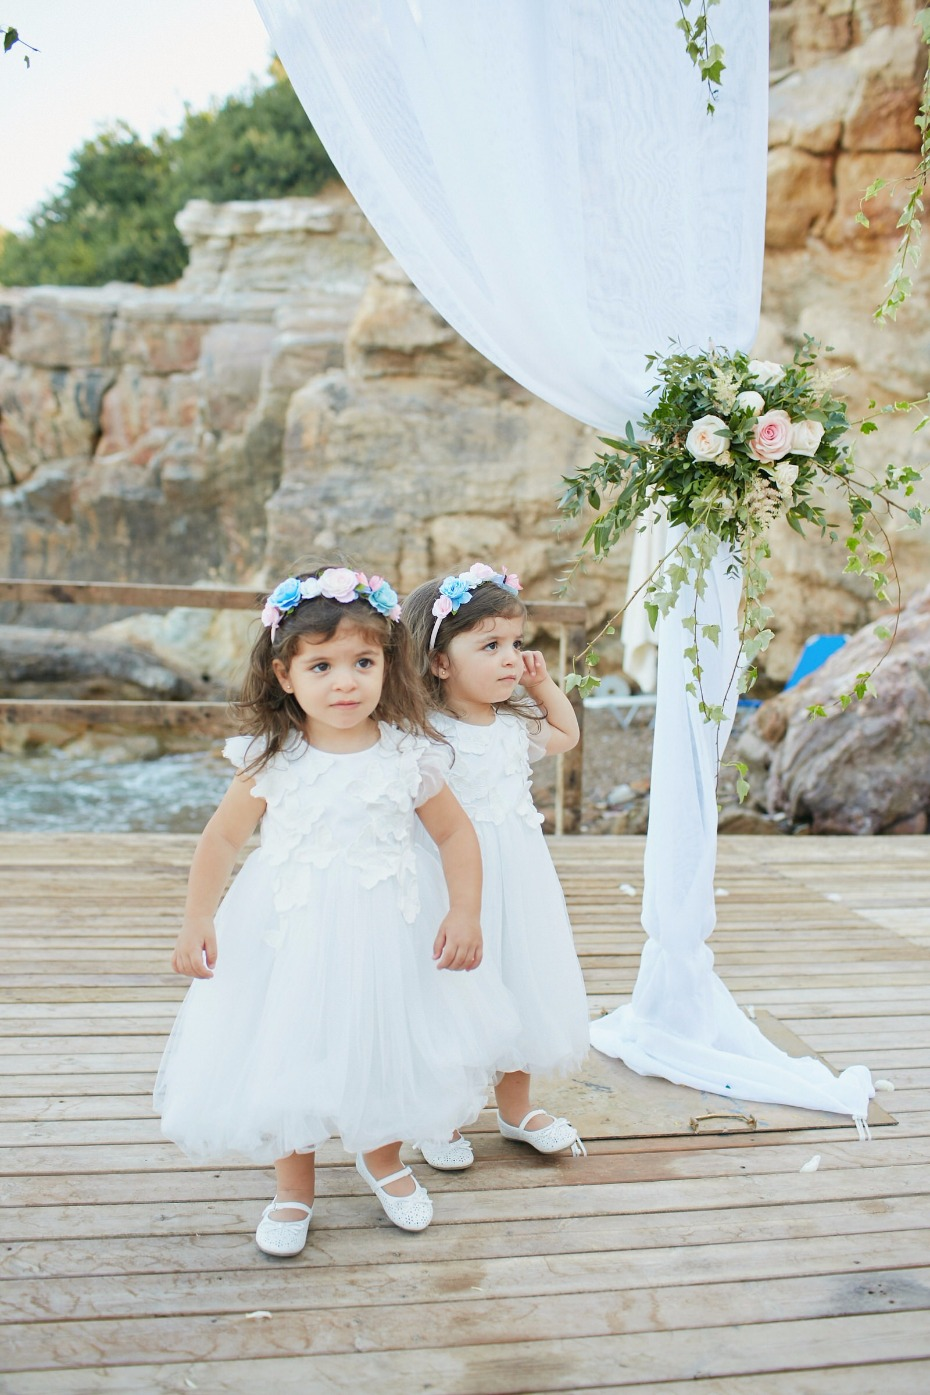 sweet flower girls all set for the walk down the aisle